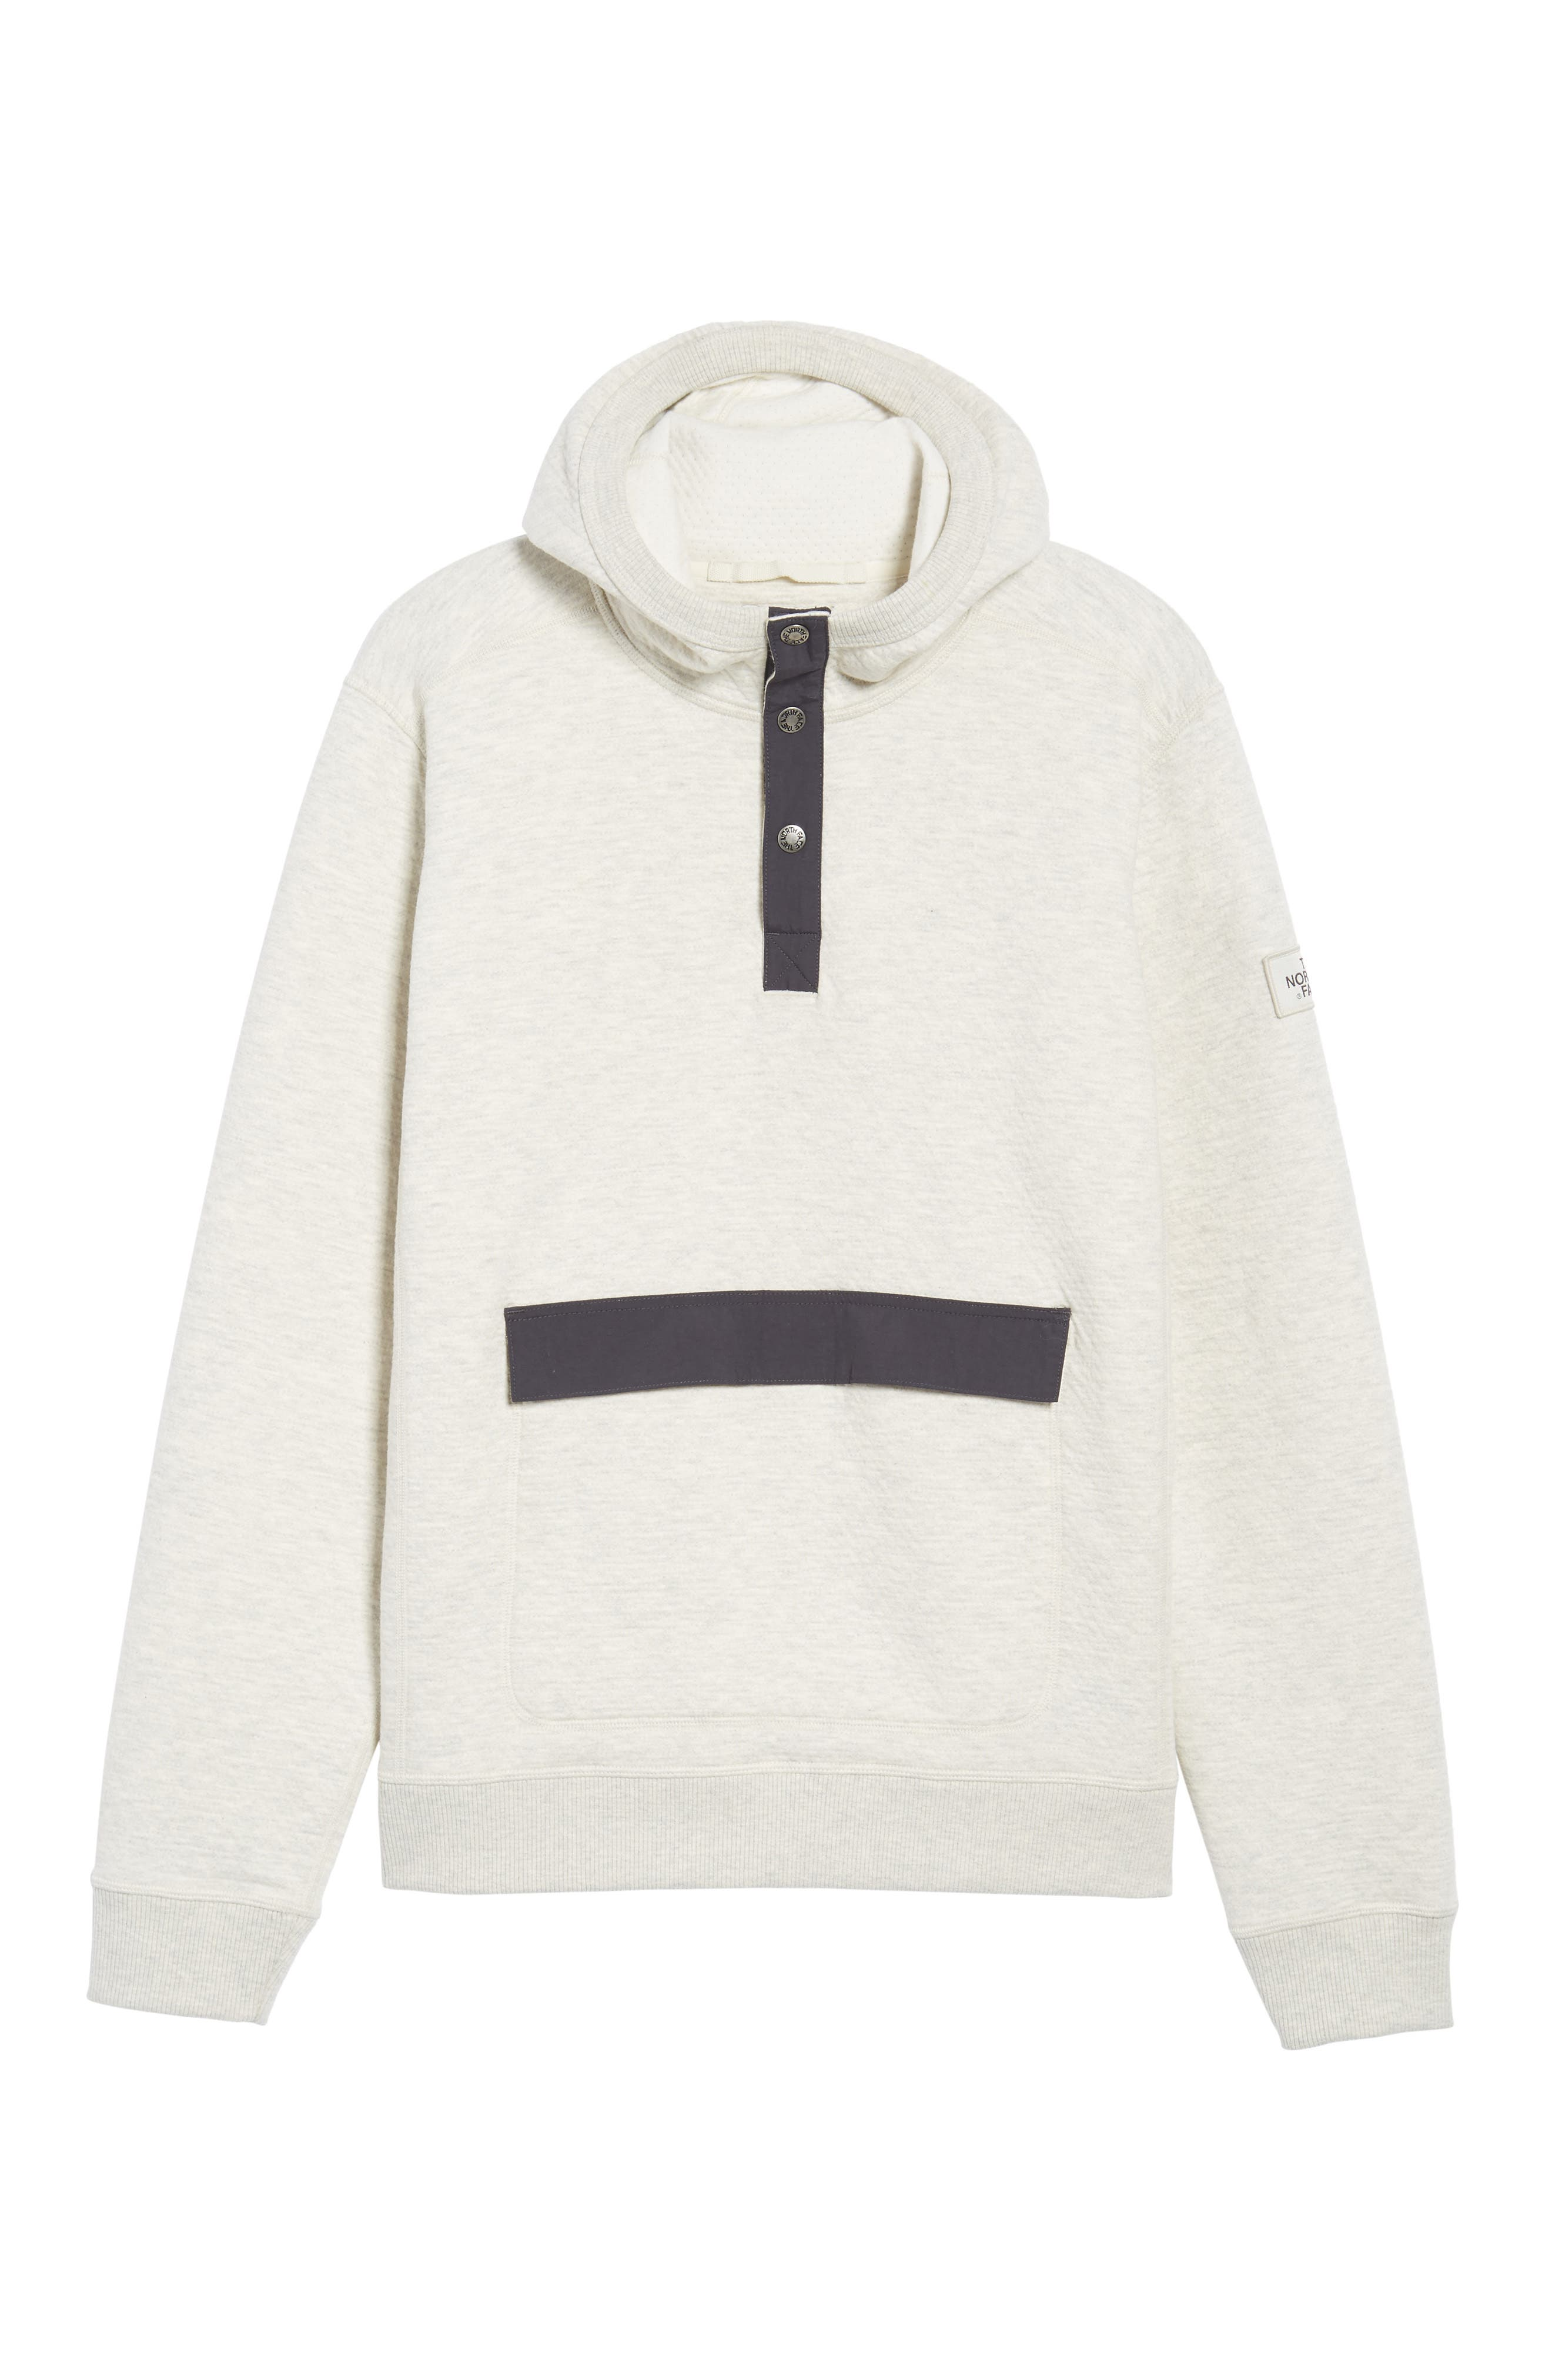 Re-Source Hoodie,                             Alternate thumbnail 6, color,                             260